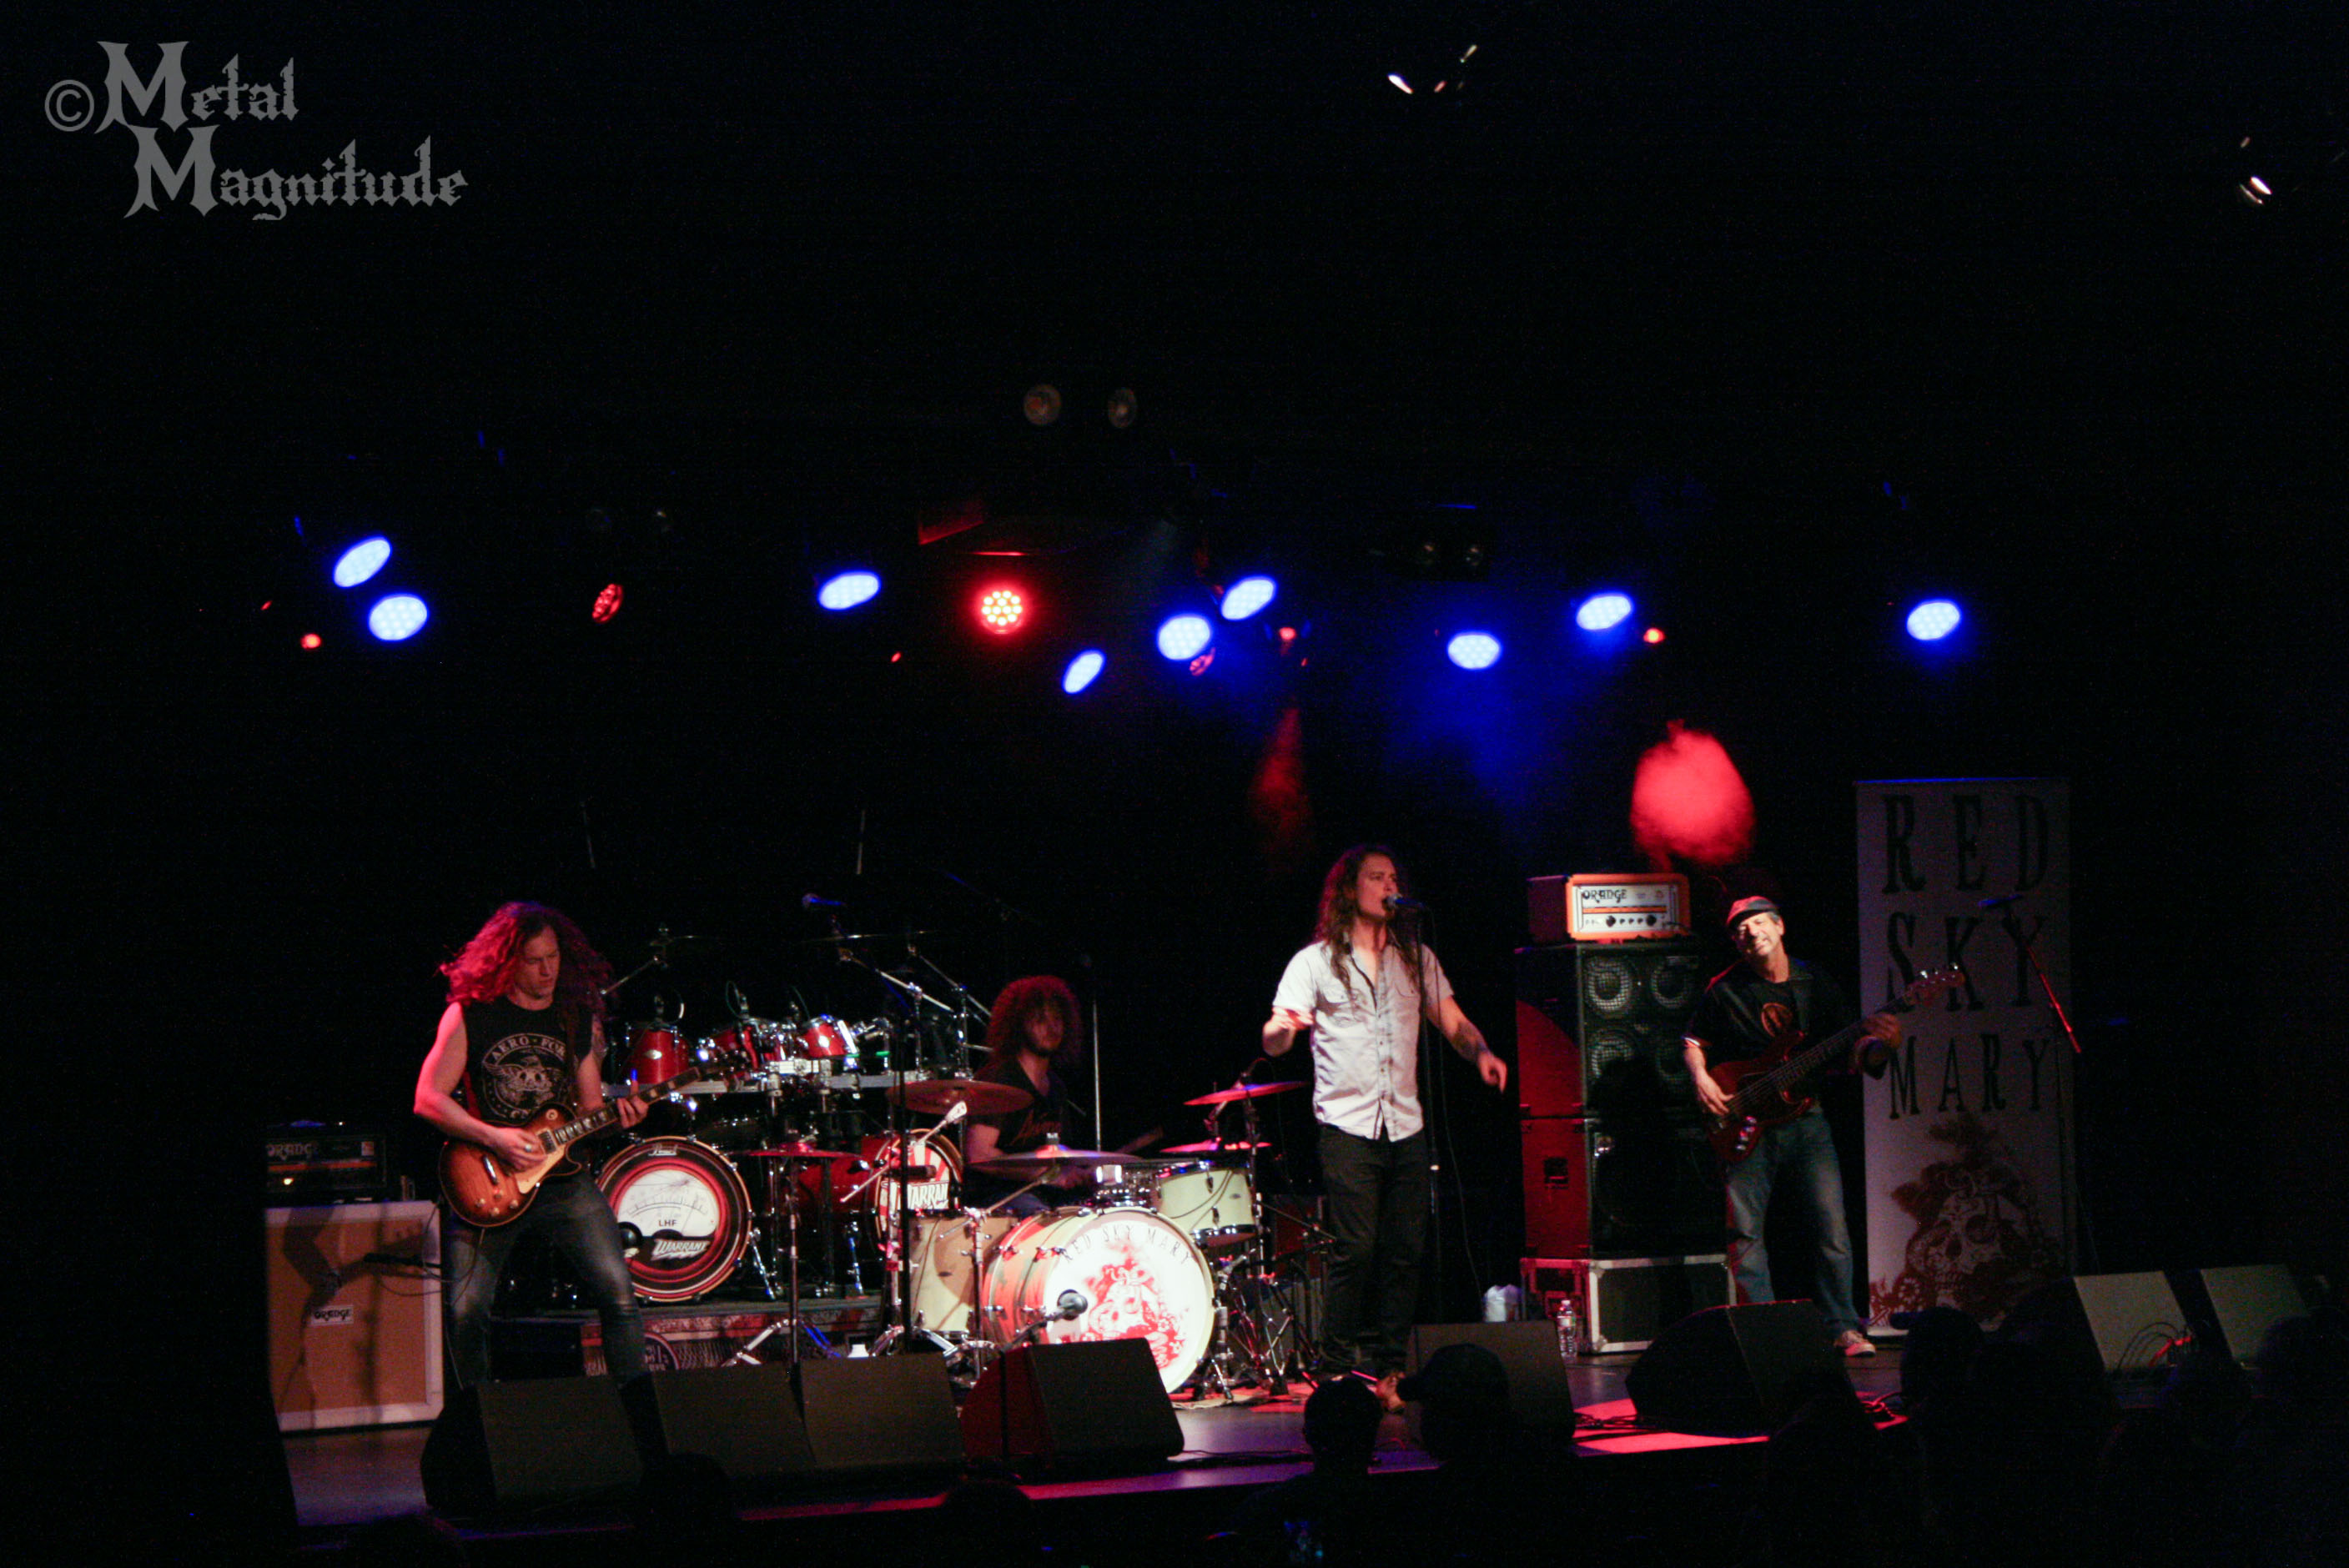 concert review warrant at tupelo music hall with red sky mary metal magnitude. Black Bedroom Furniture Sets. Home Design Ideas